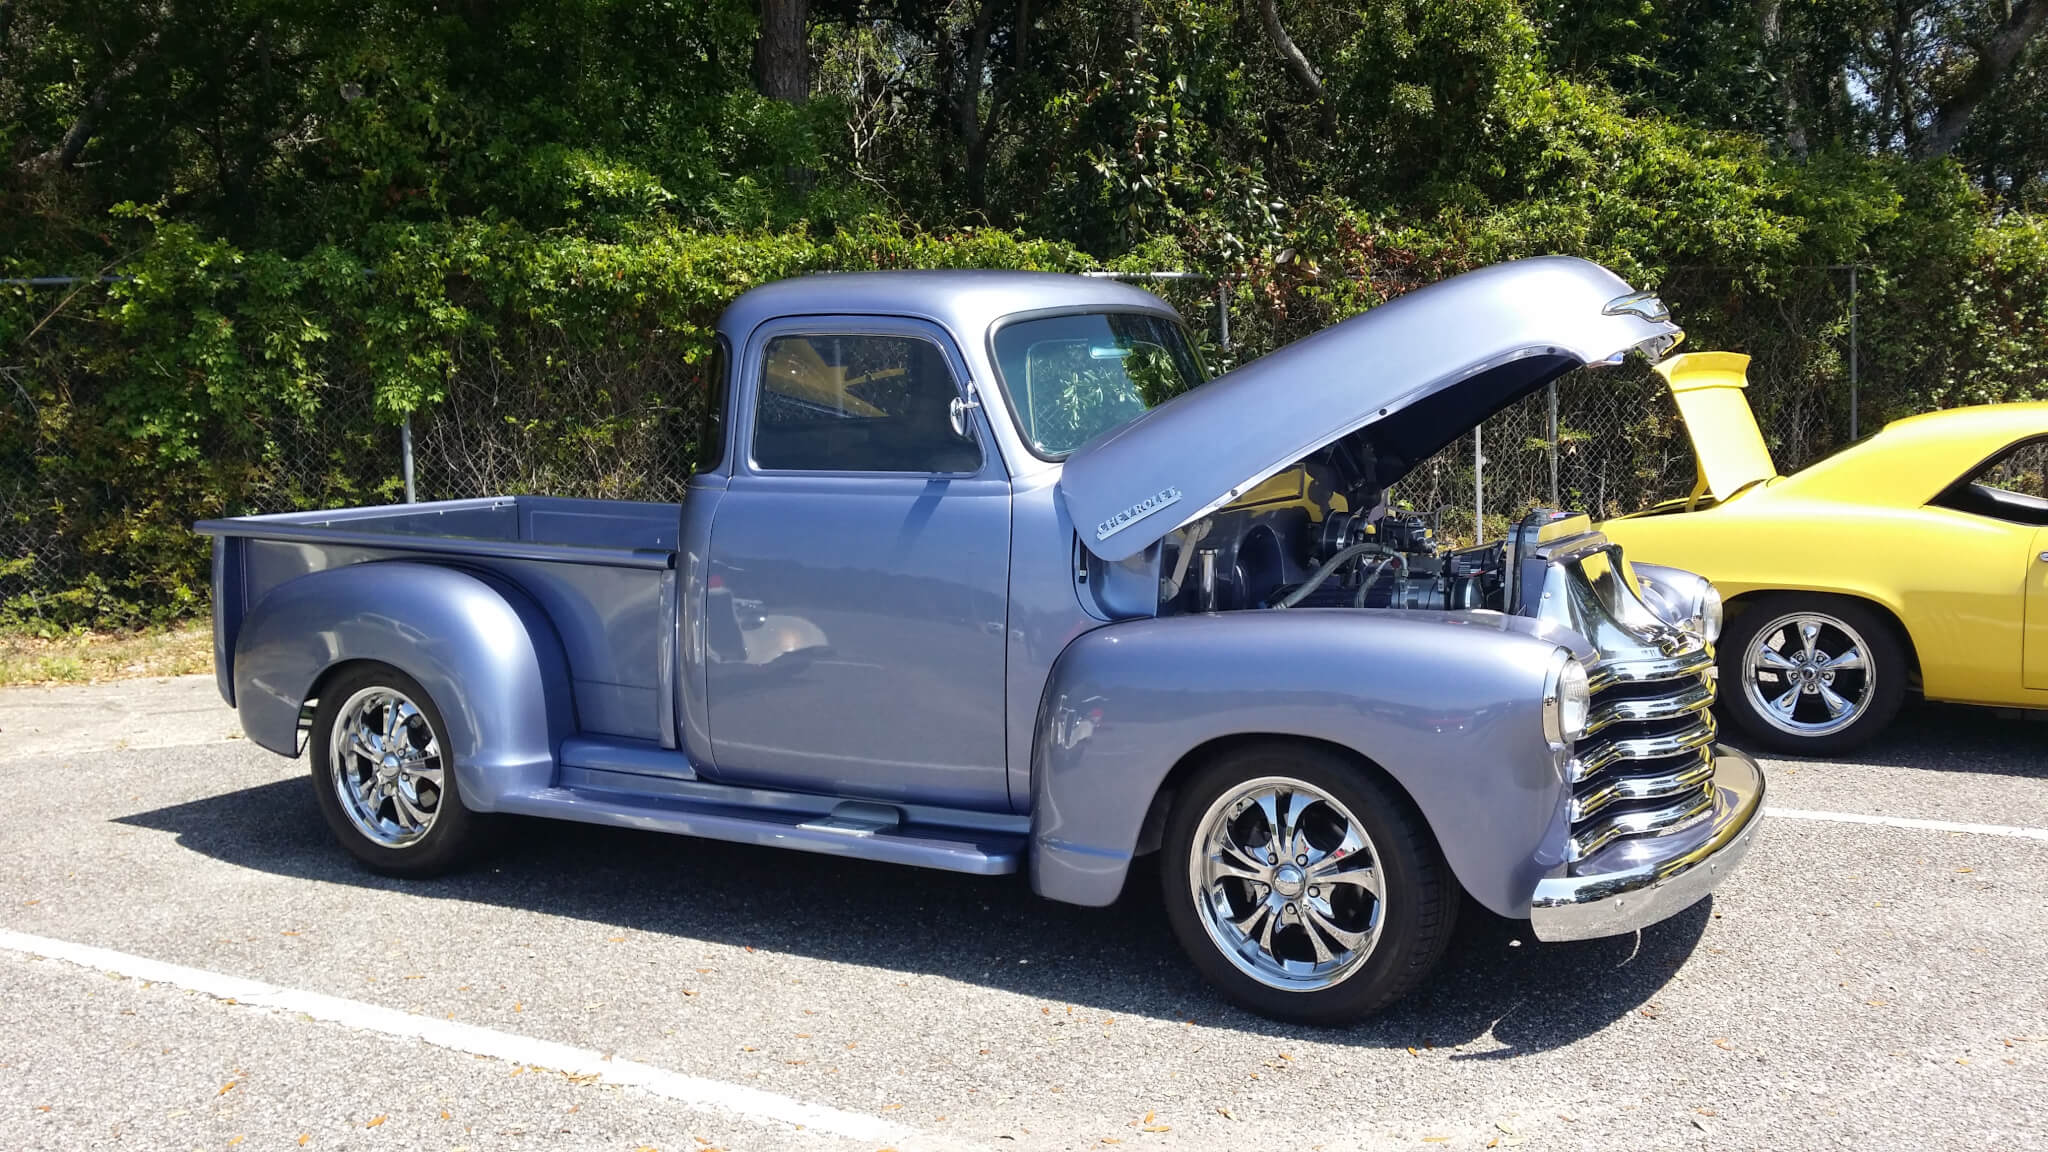 1955 Chevy Custom Paint David L Lmc Truck Life Since Then It Has Had The 2 Rear Fenders Replaced Thanks To Doors Have Been Shaved And Was Perfectly Matched Still Planning A Couple Other